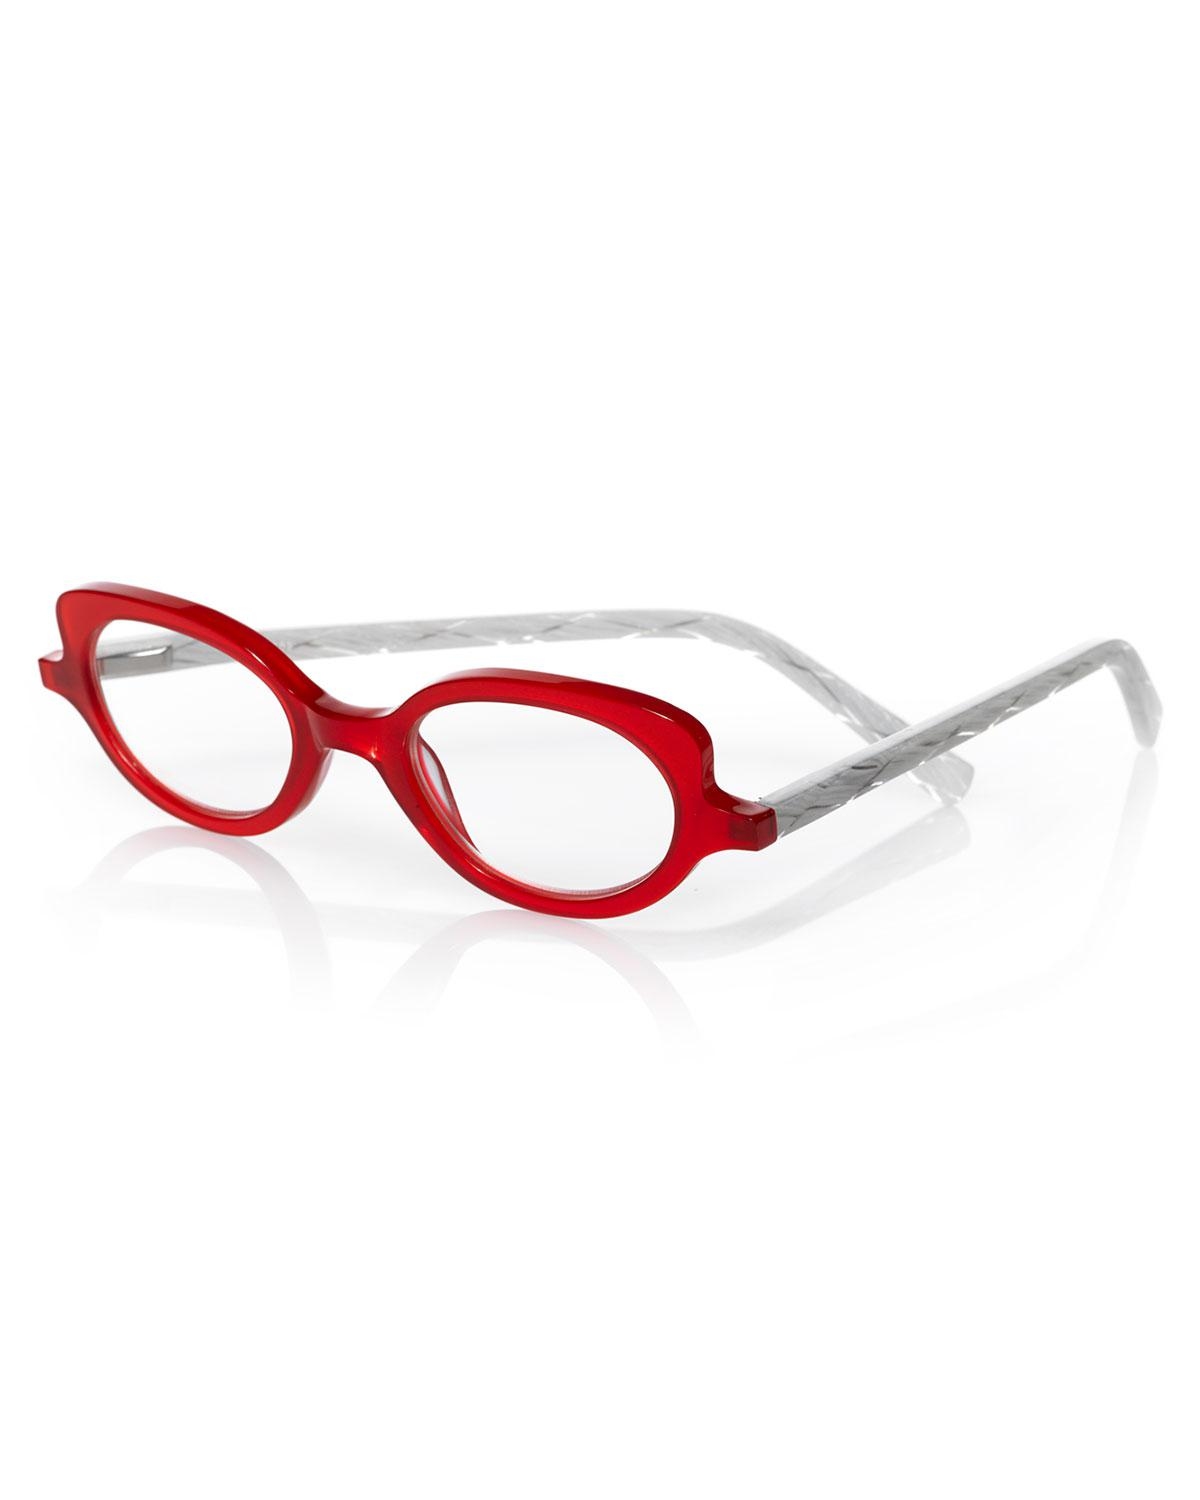 7e1e1eff7a0 Lyst - Eyebobs Peep Show Two-tone Readers in Red